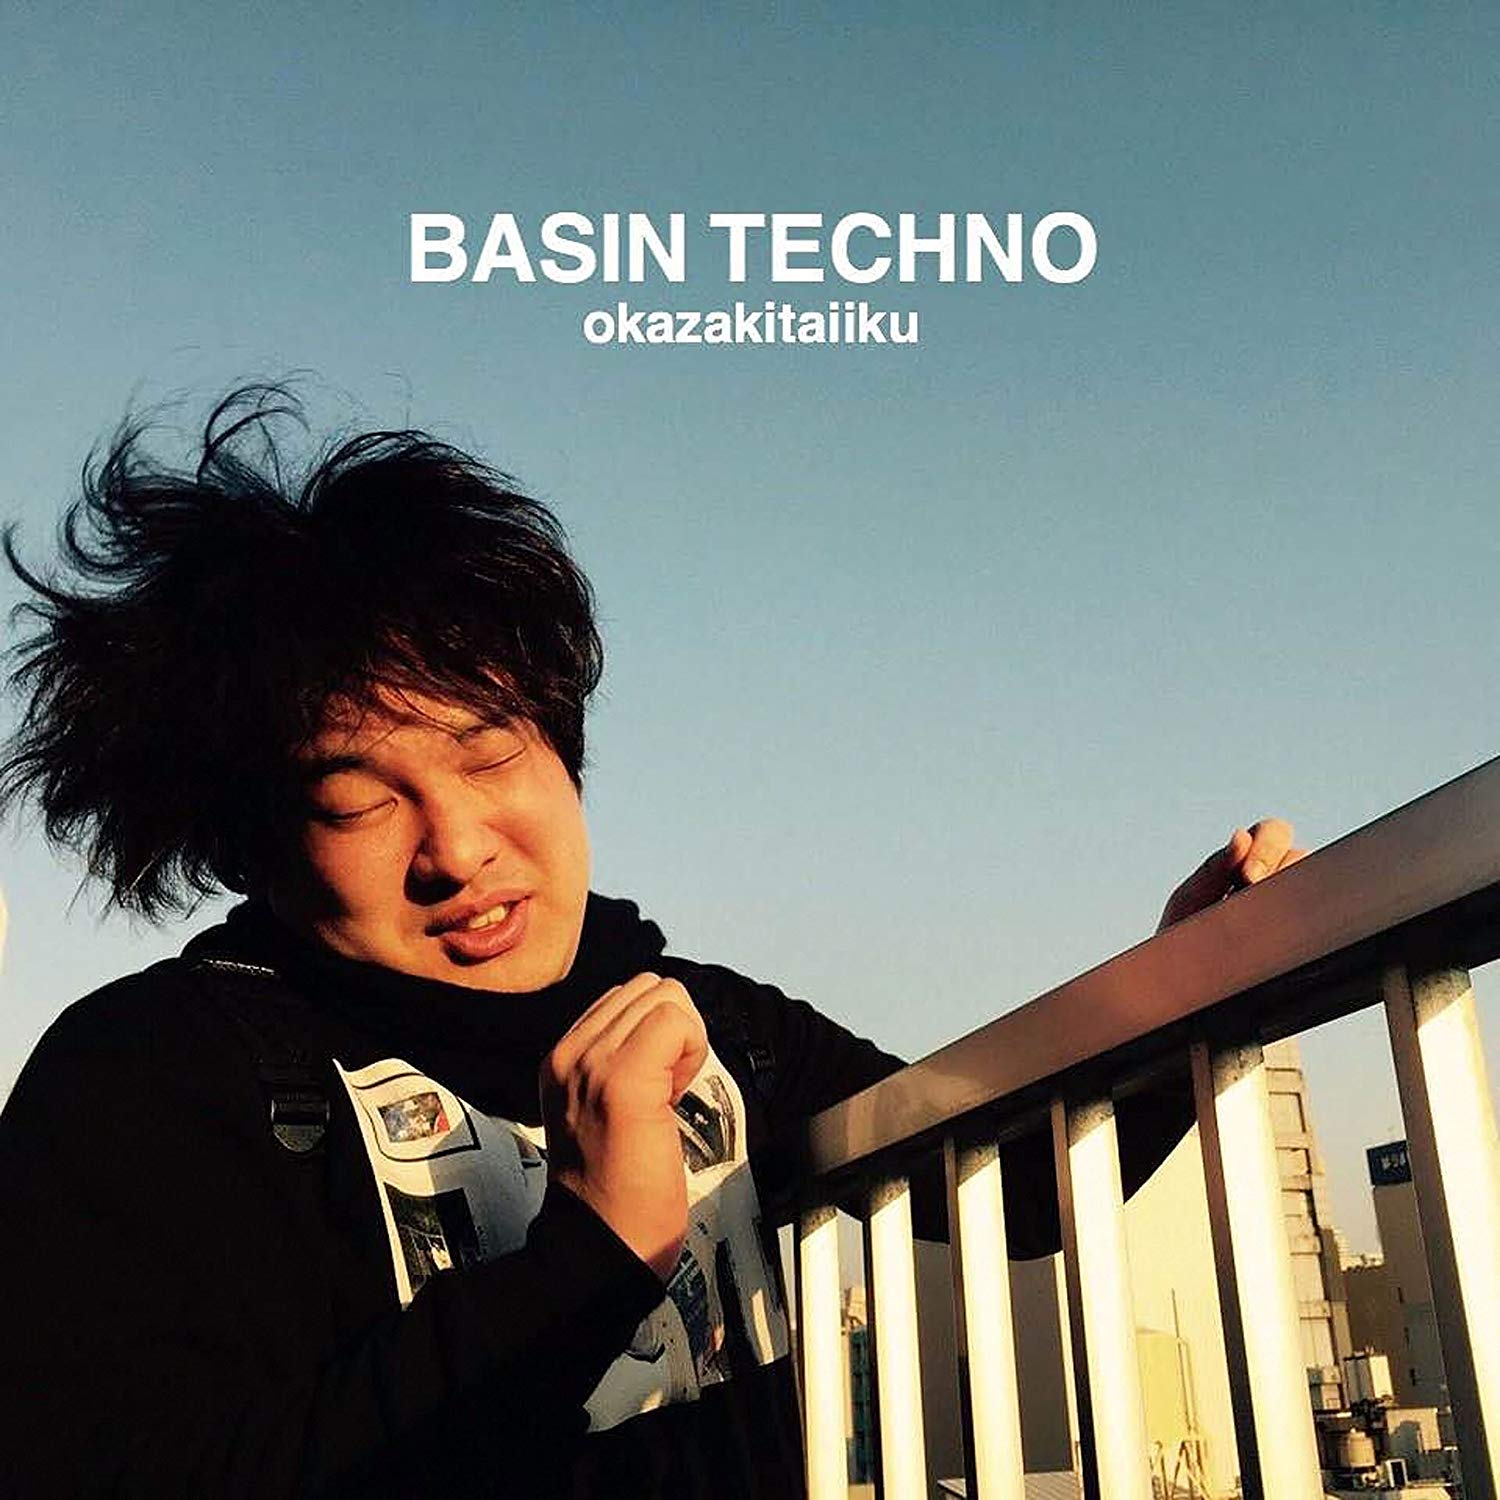 岡崎体育:BASIN TECHNO